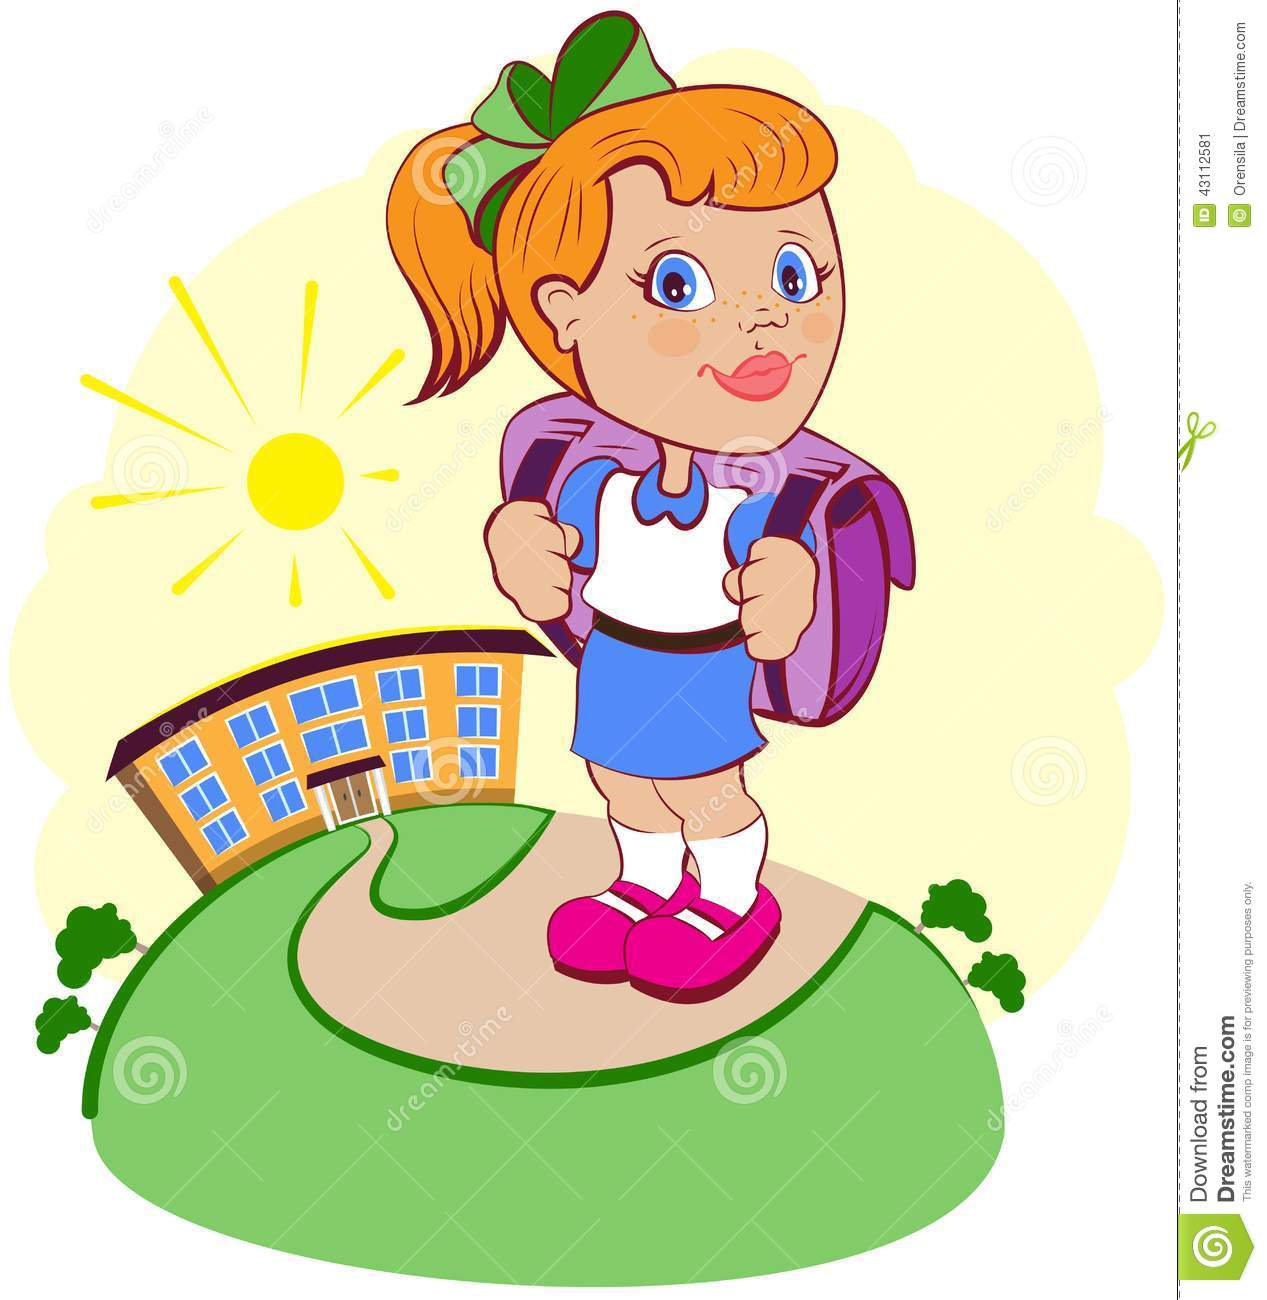 The Girl Goes To School Stock Vector - Image: 43112581